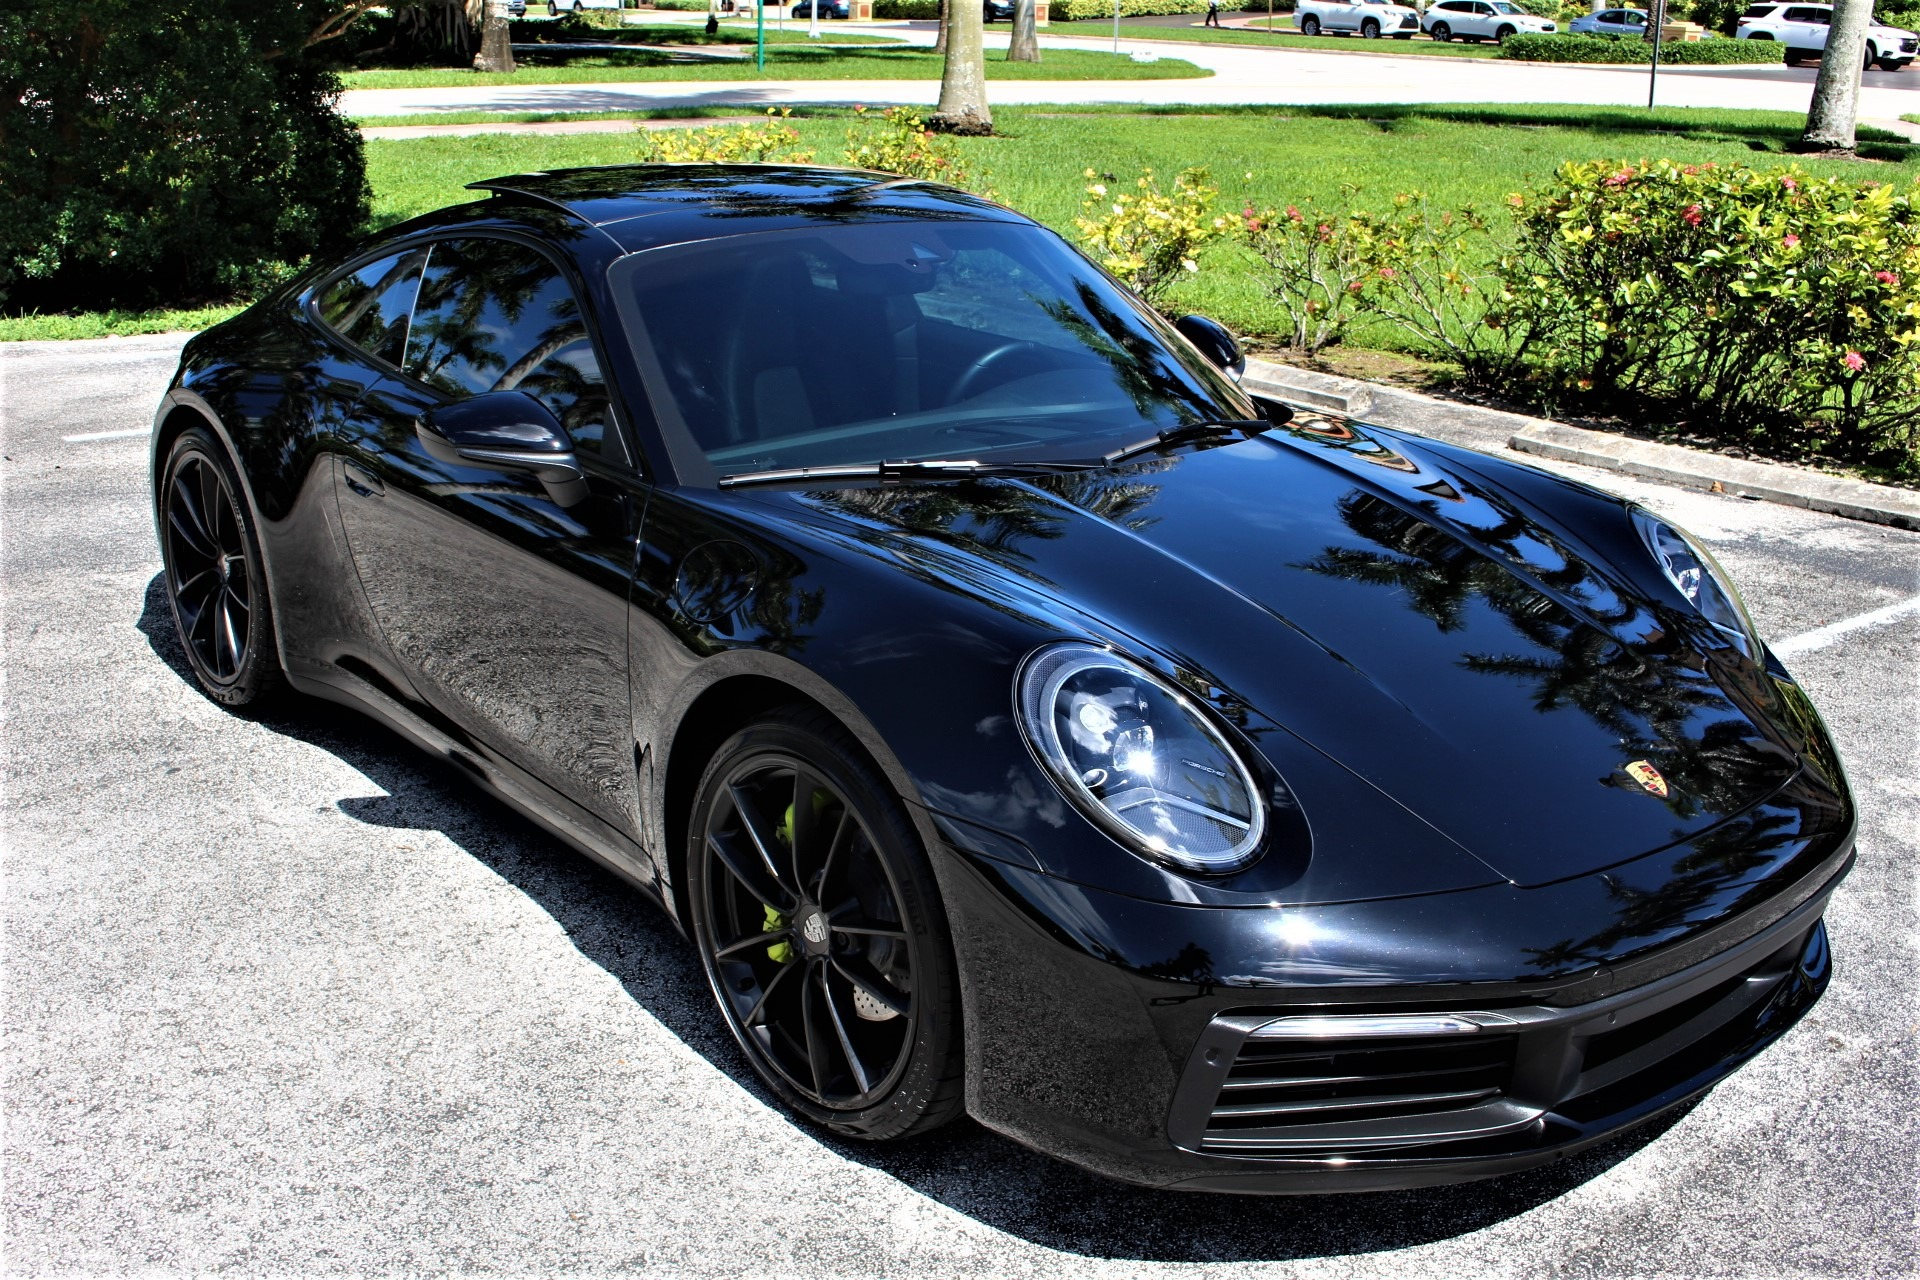 Used 2020 Porsche 911 Carrera for sale Sold at The Gables Sports Cars in Miami FL 33146 4